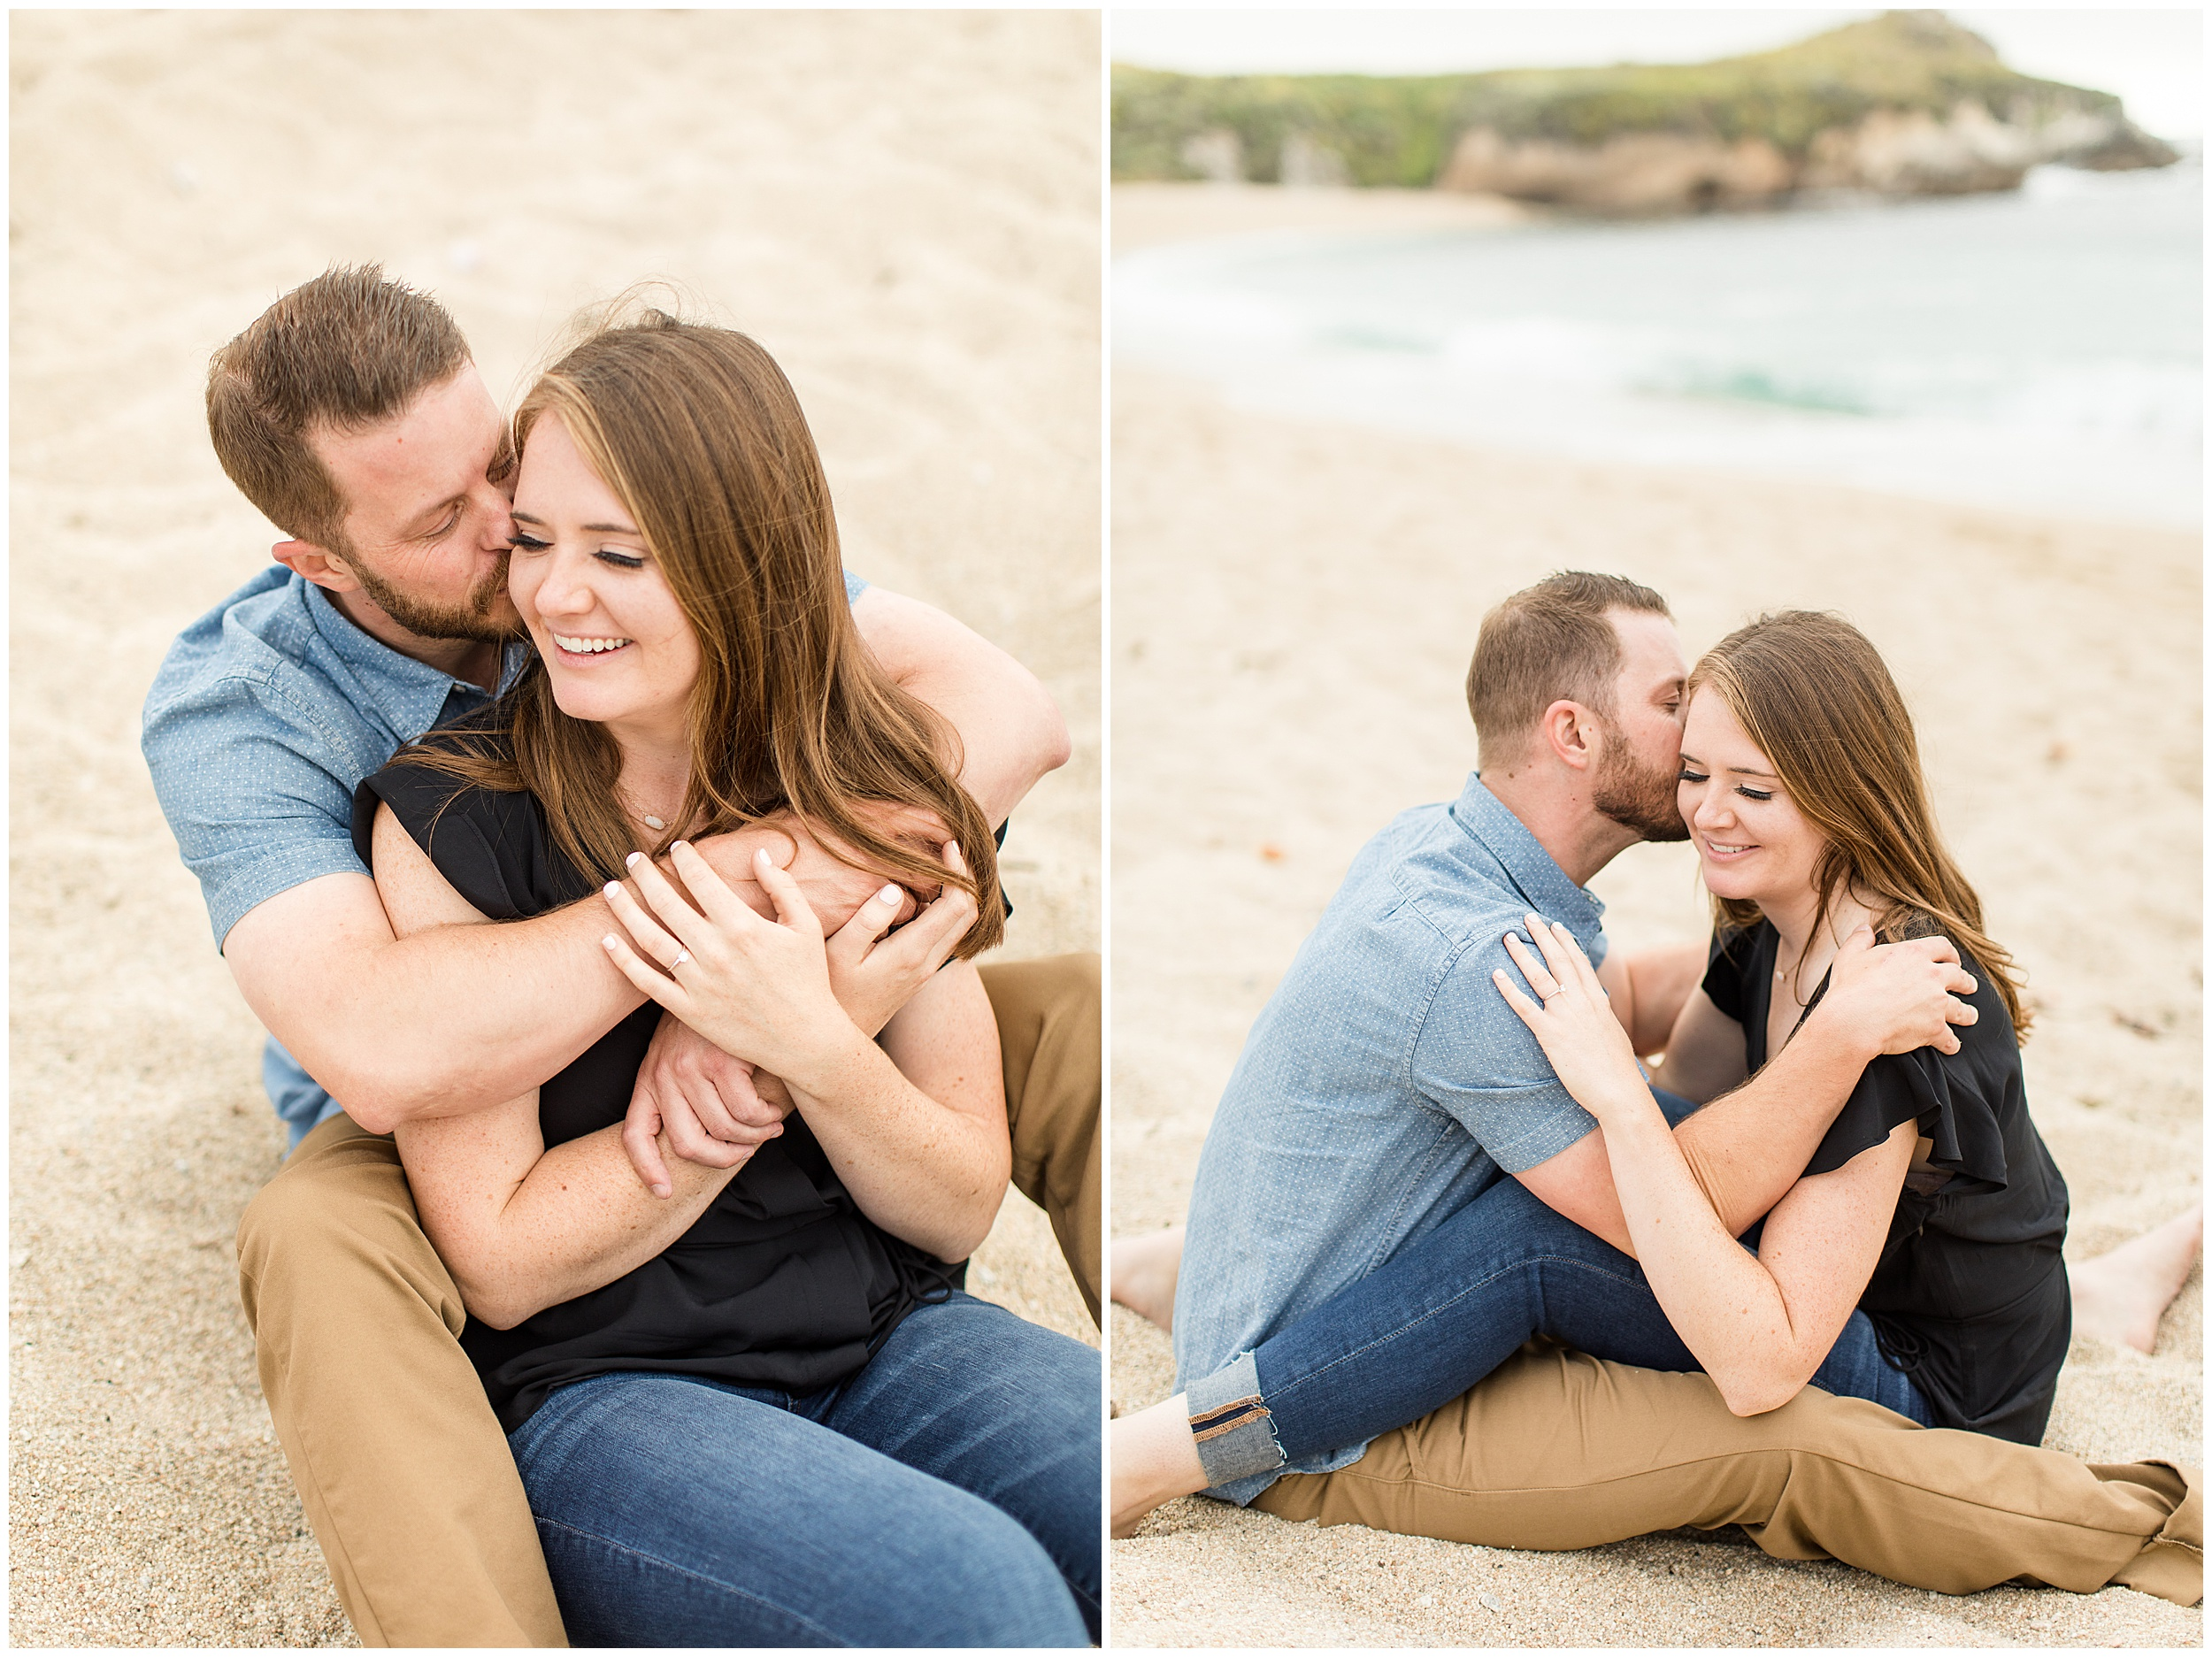 2019 carmel by the sea surprise proposal engagement session wedding photographer angela sue photography_0017.jpg